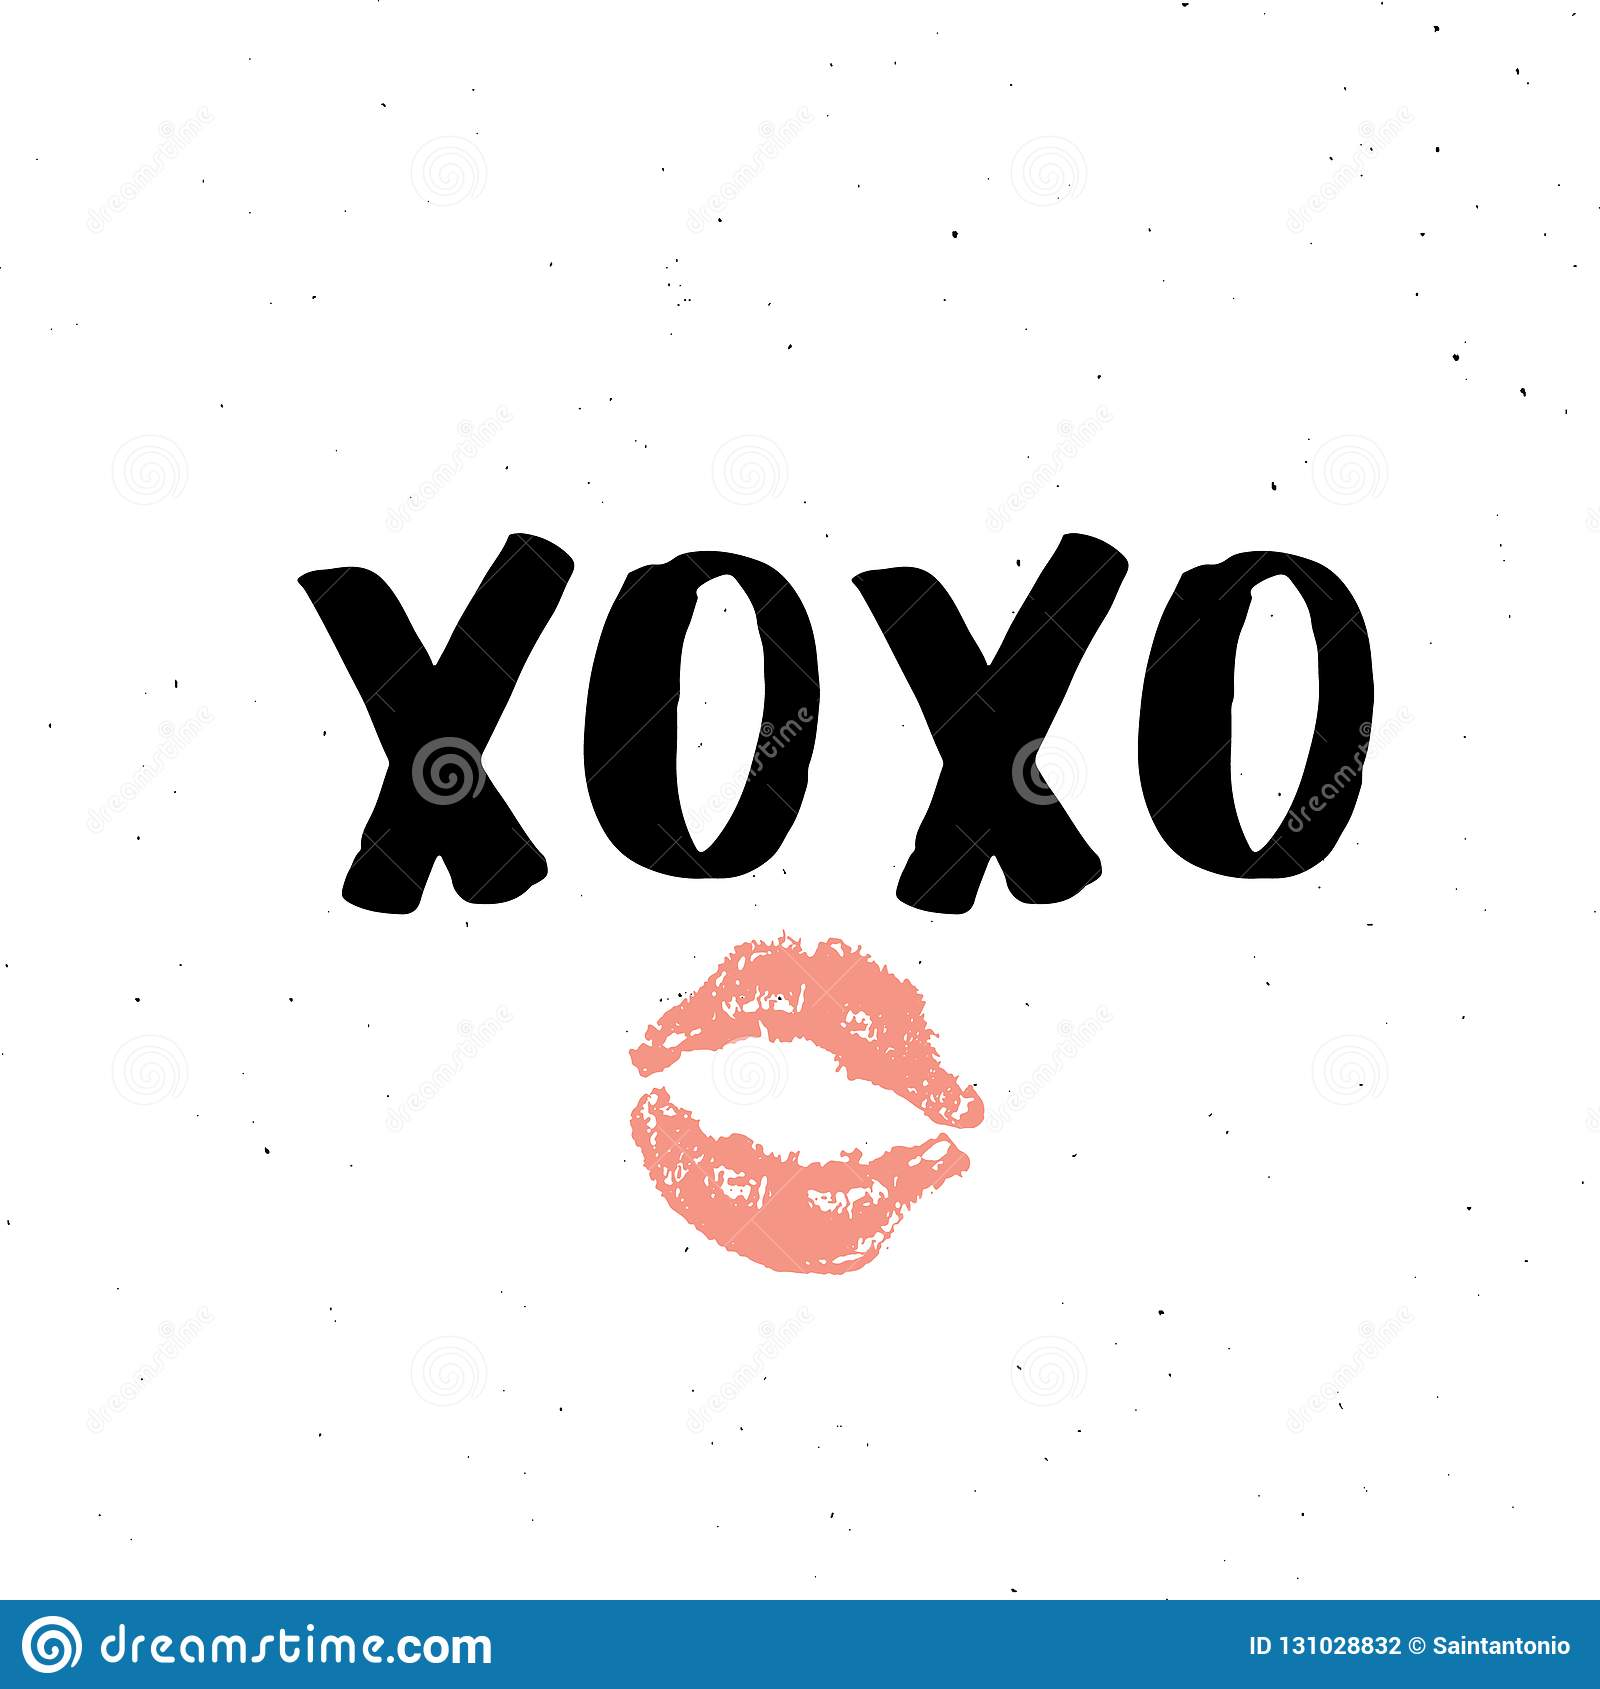 XOXO Brush Lettering Sign, Grunge Calligraphic Hugs And